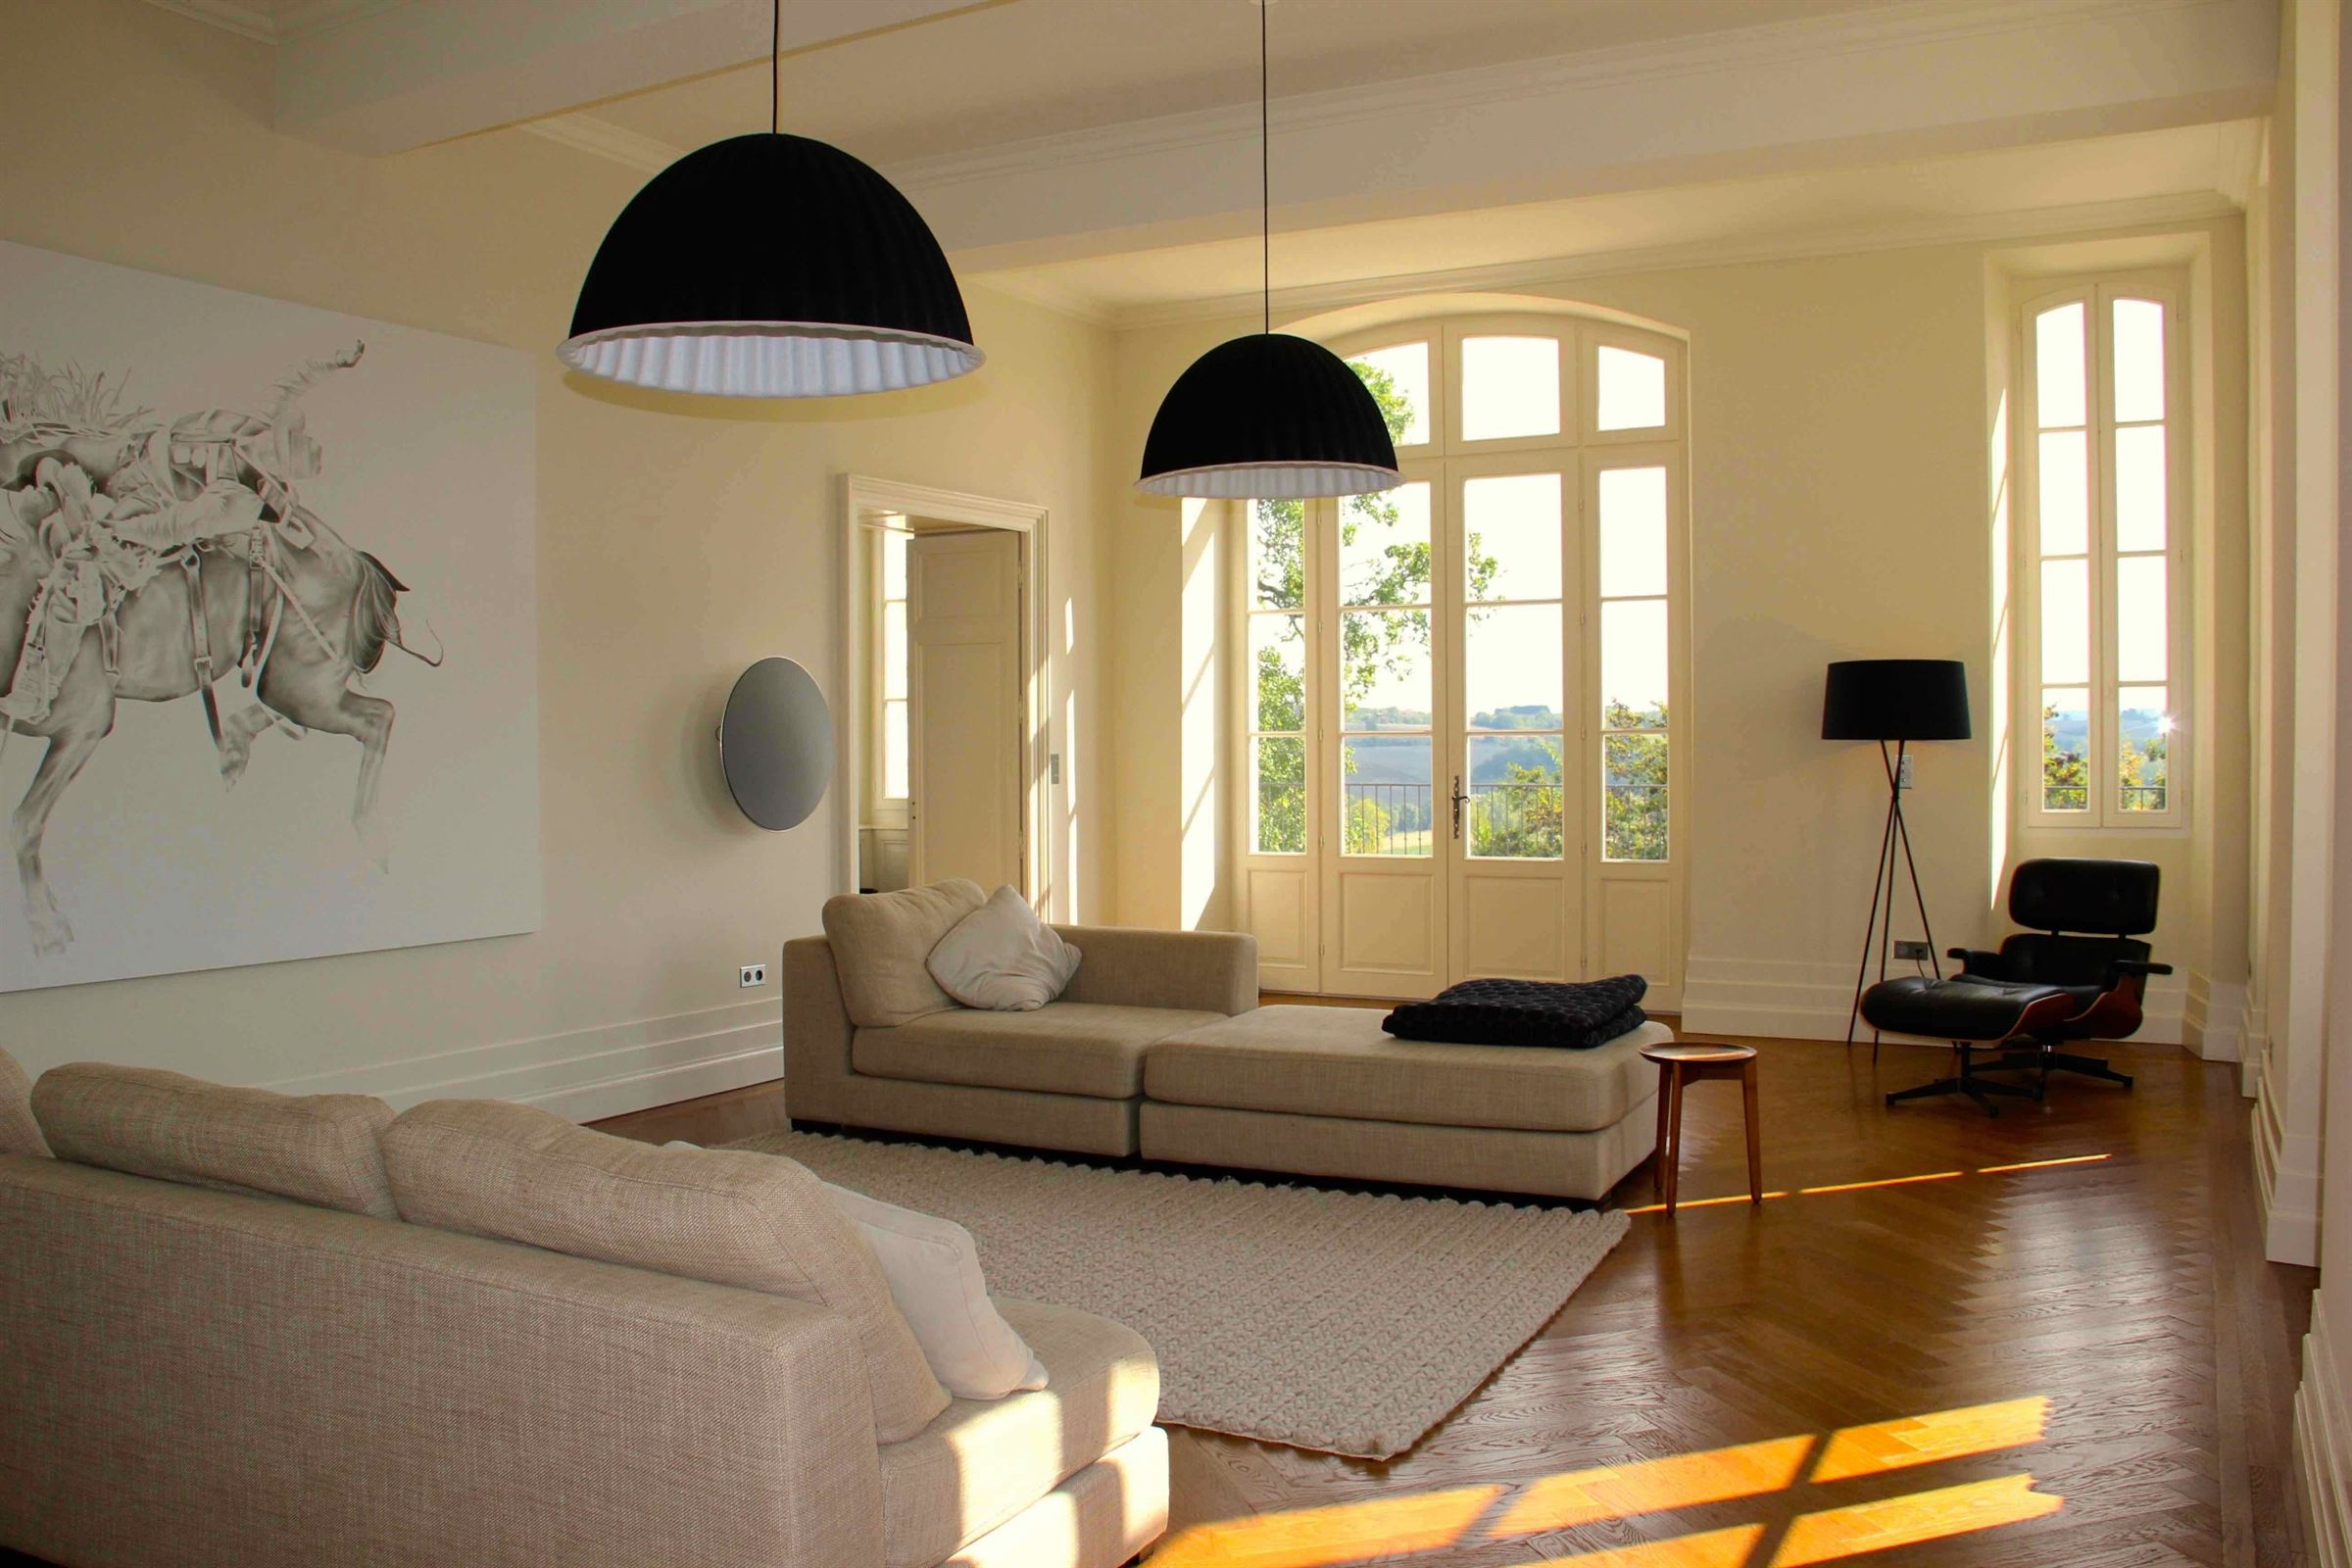 Moradia para Venda às EXCLUSIVE - STUNNING HISTORICAL ESTATE - BEAUTIFULLY RENOVATED Bordeaux, Aquitaine, 33000 França